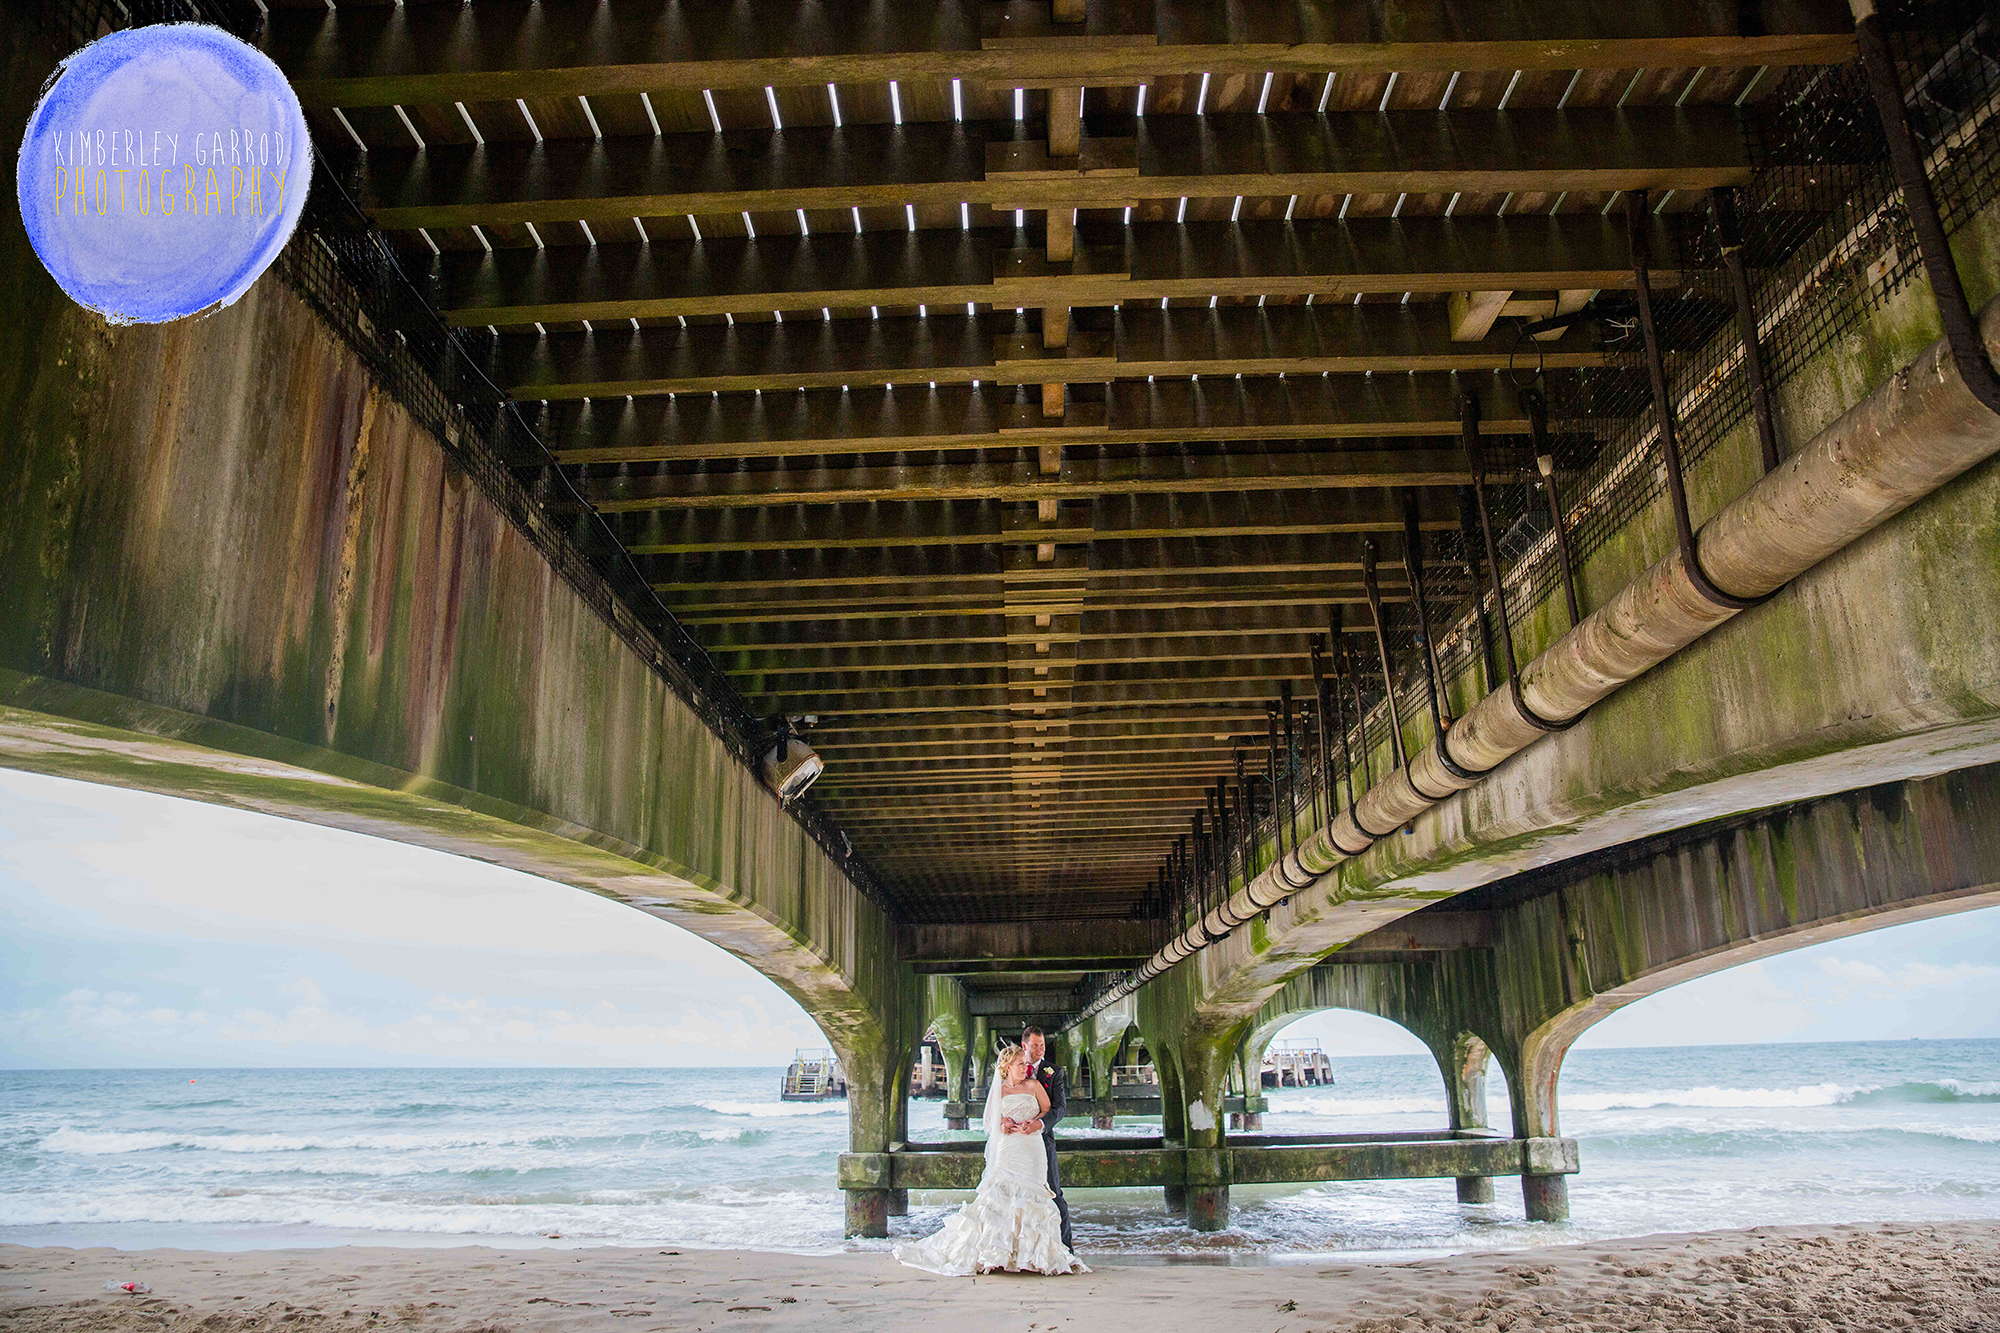 Bournemouth Beach Wedding Kimberley Garrod Photography-815